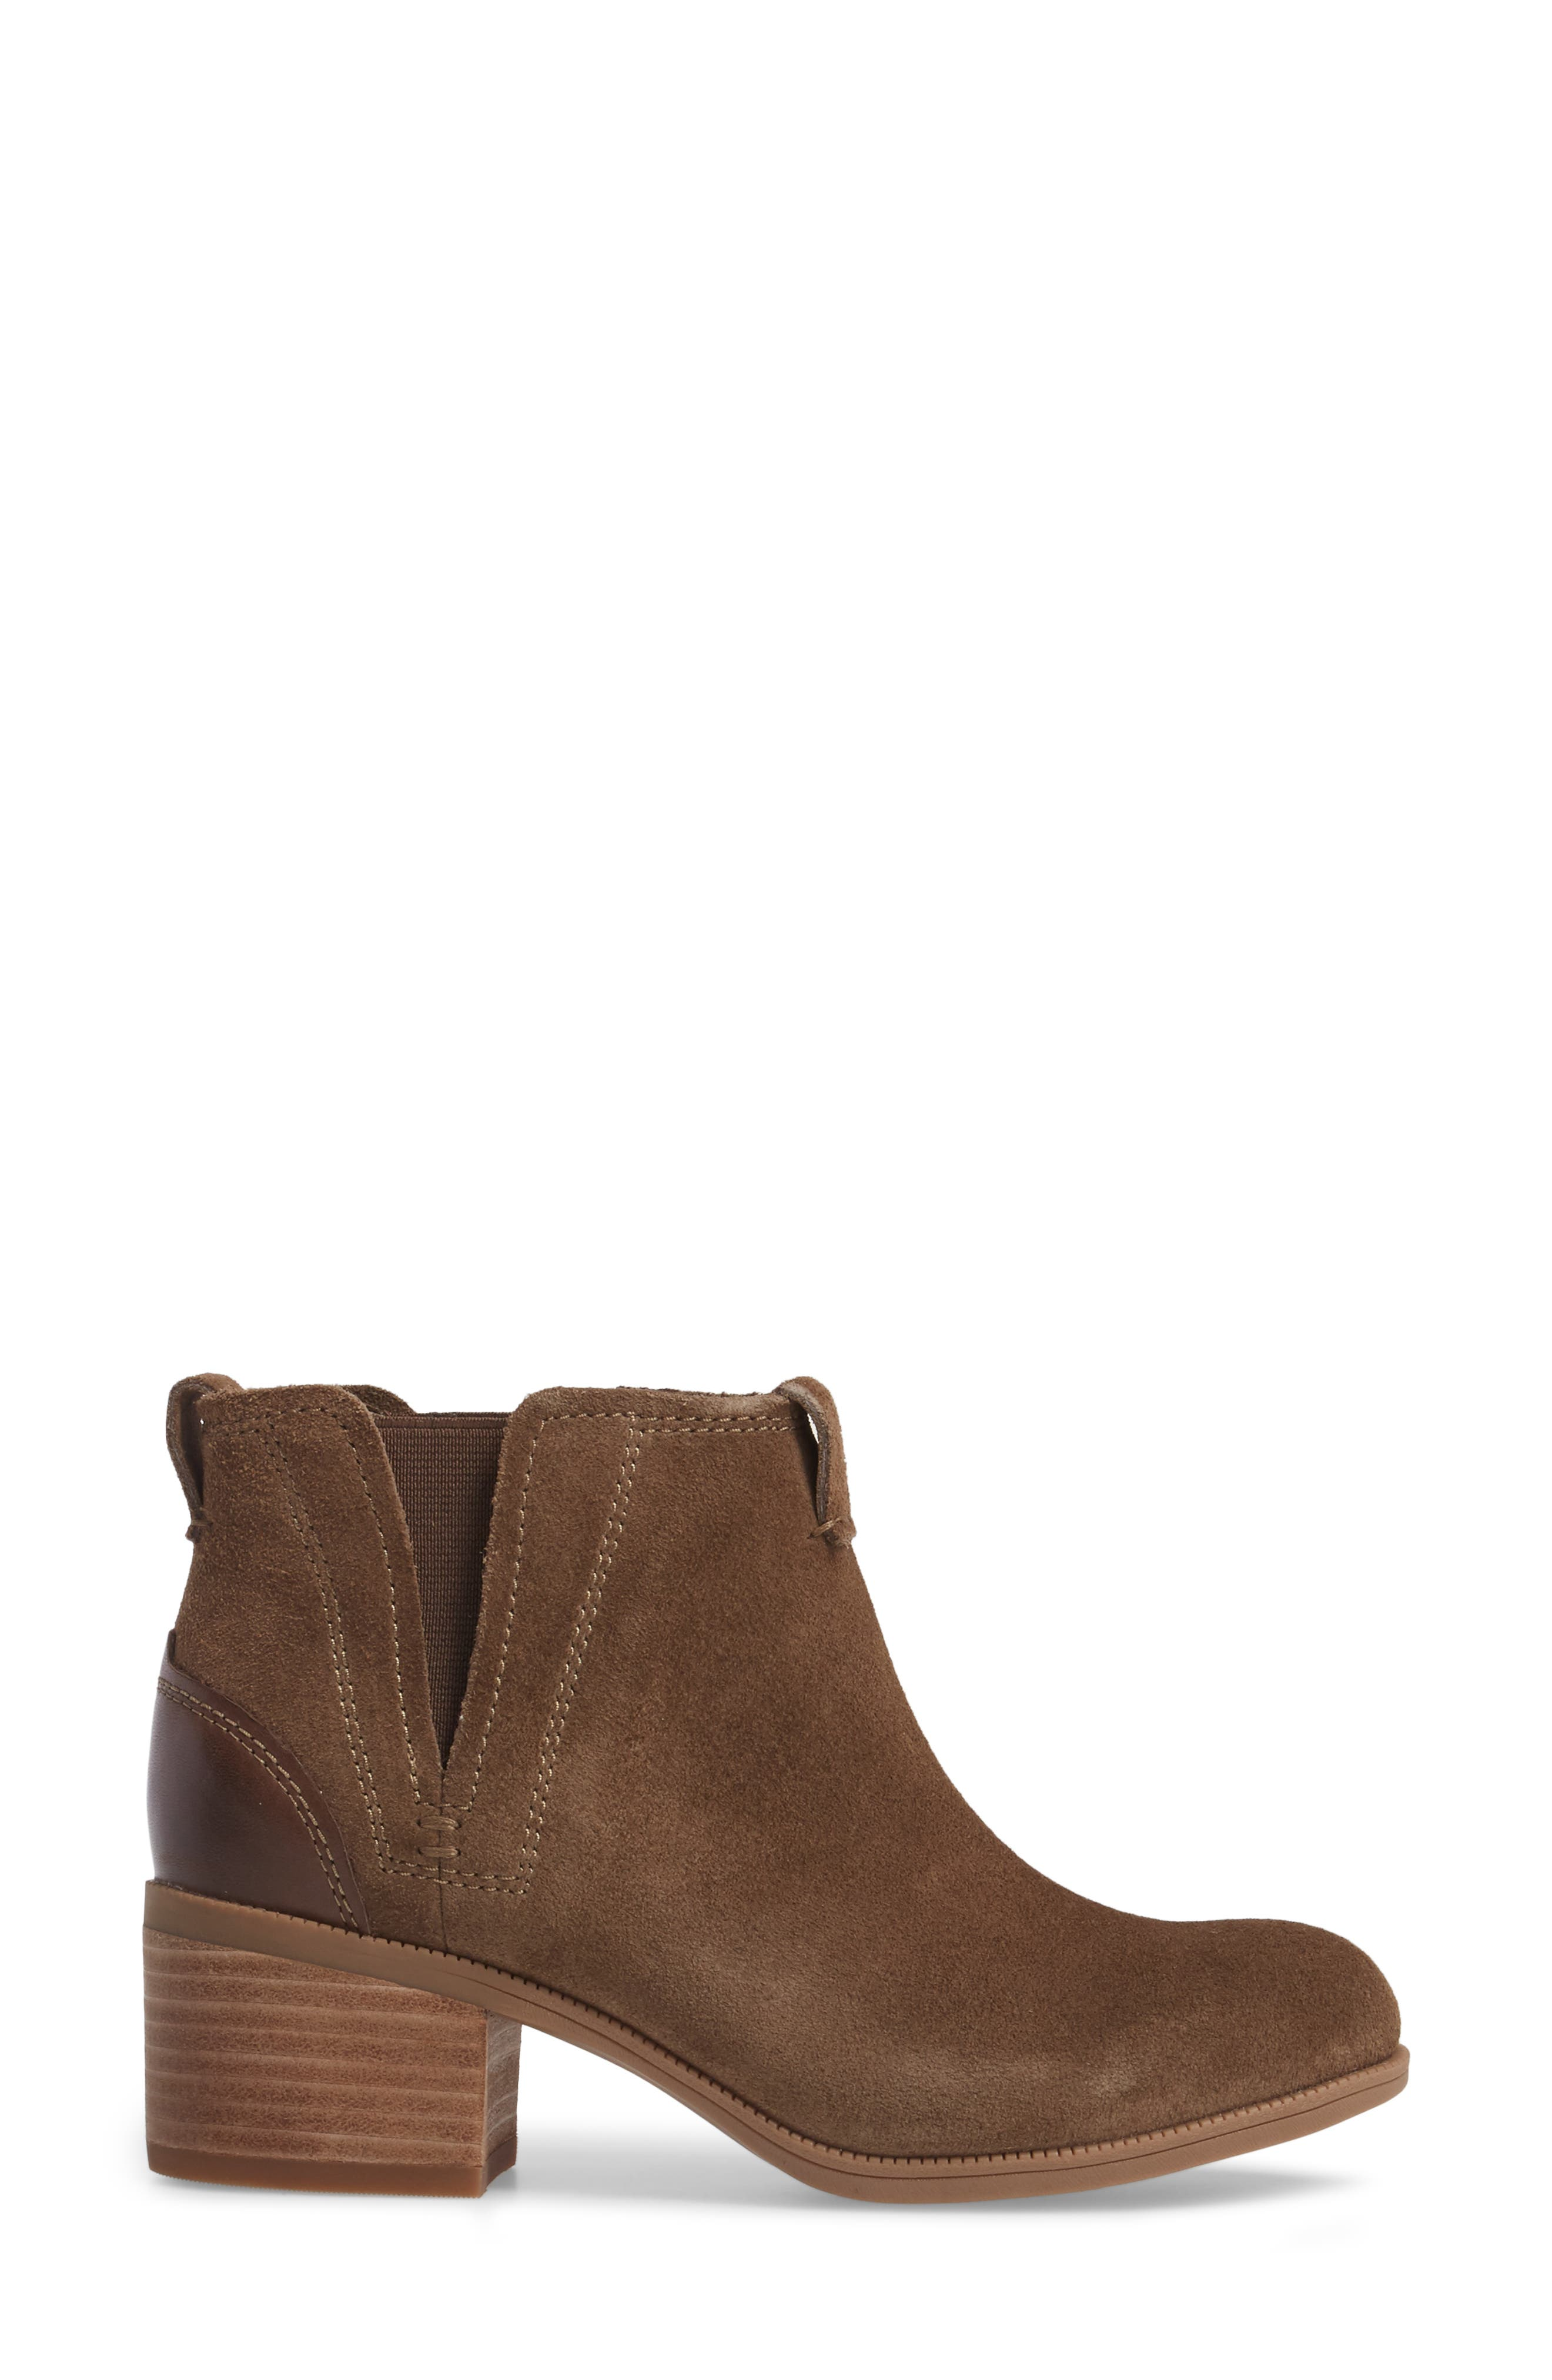 Maypearl Daisy Bootie,                             Alternate thumbnail 9, color,